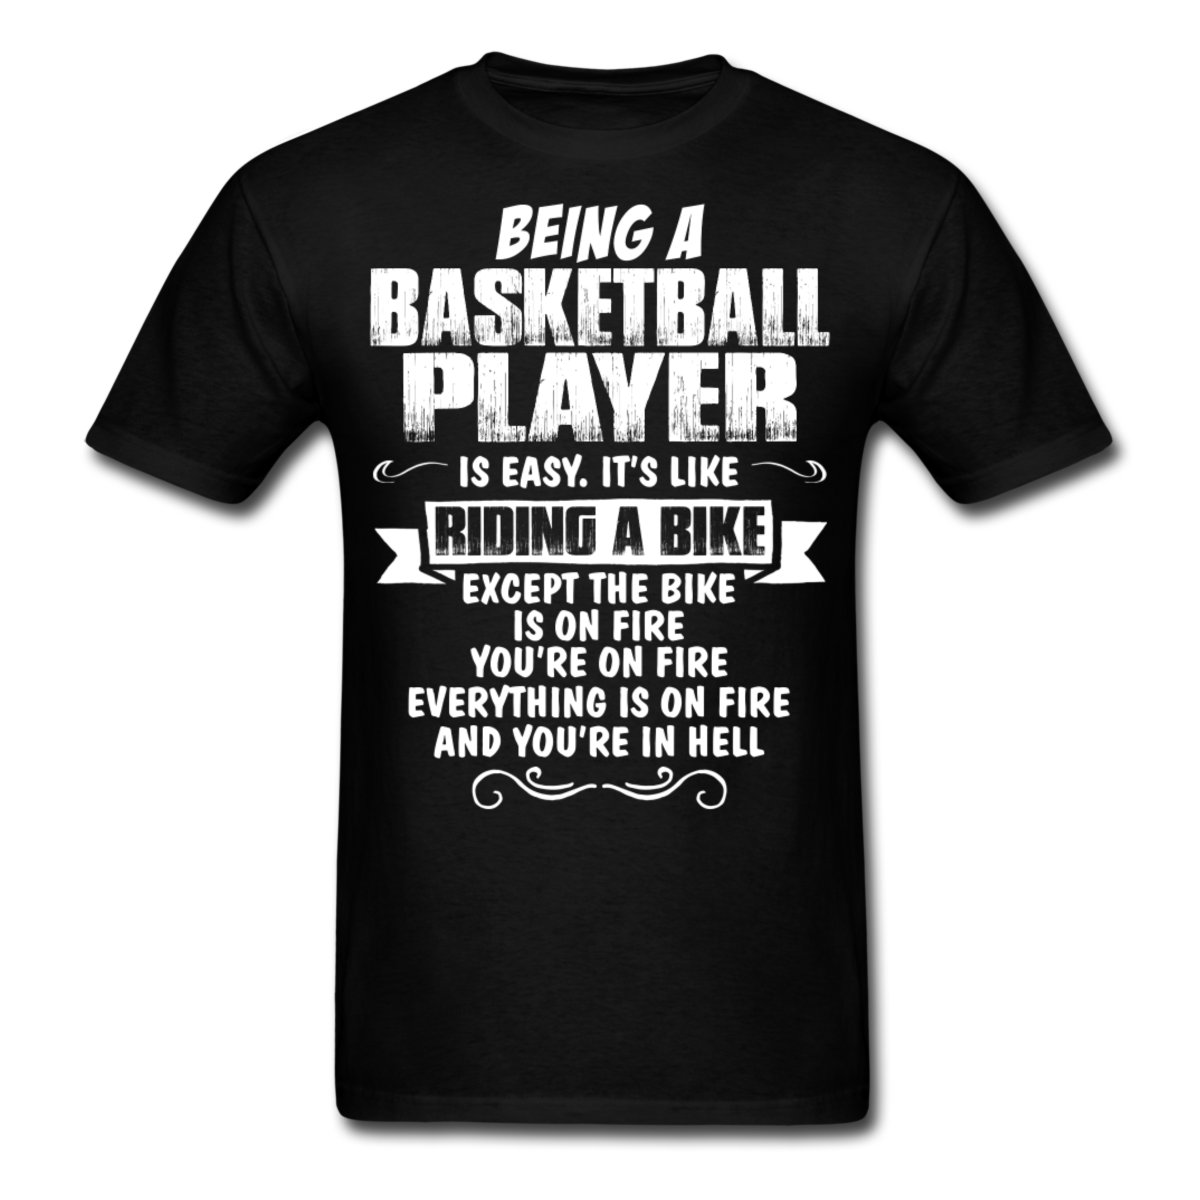 Basketball T Shirt Design Ideas elementary school basketball t shirt template Basketballer Player Funny Quote Mens T Shirt Design T Shirts Casual Cool Short Sleeve T Shirt Free Shipping Solid Color